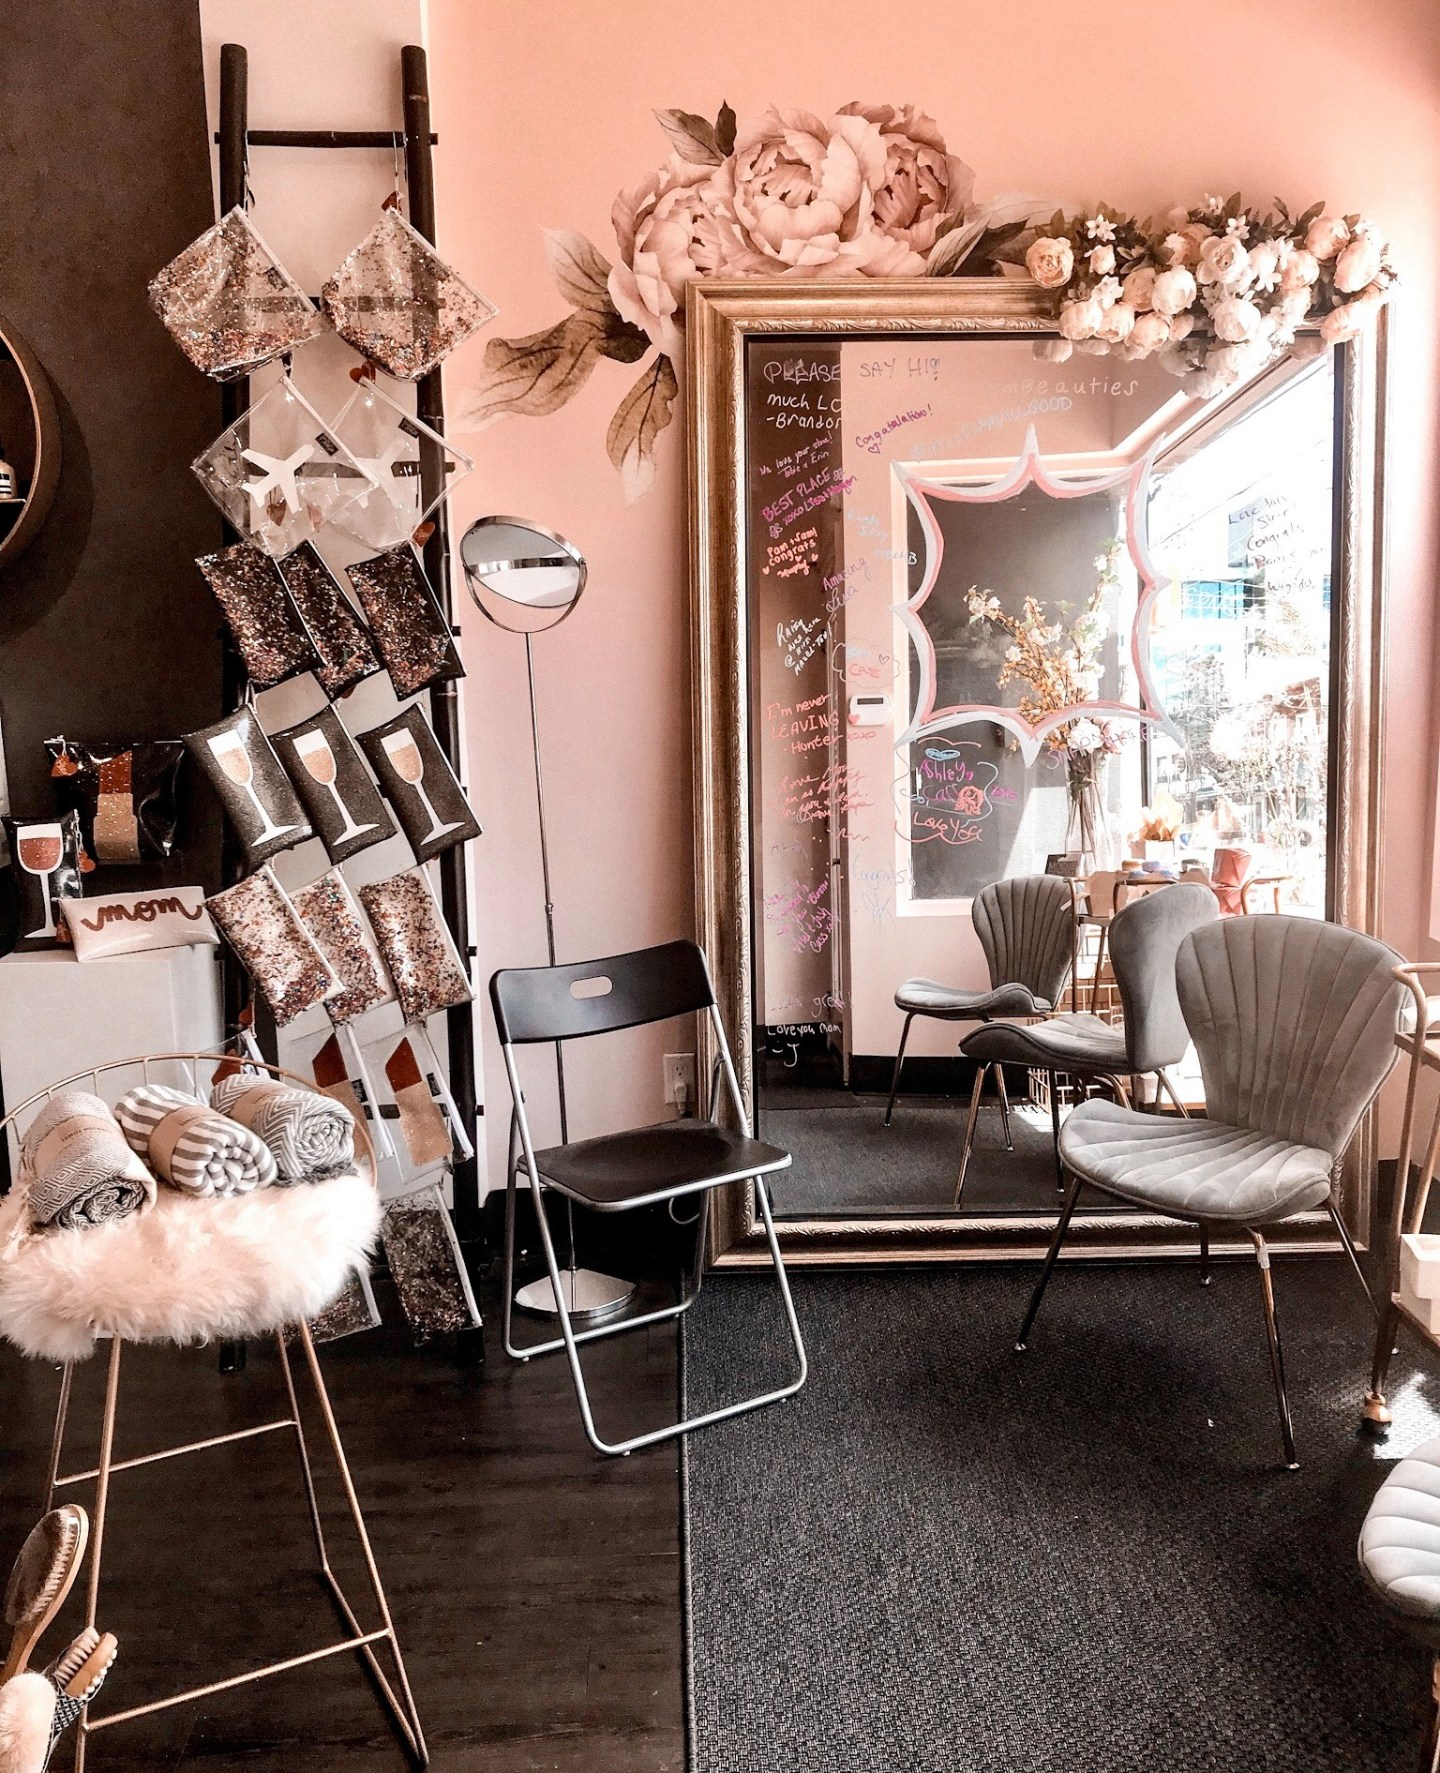 Bloom Beauty- Toronto's First Clean Beauty Makeup Studio